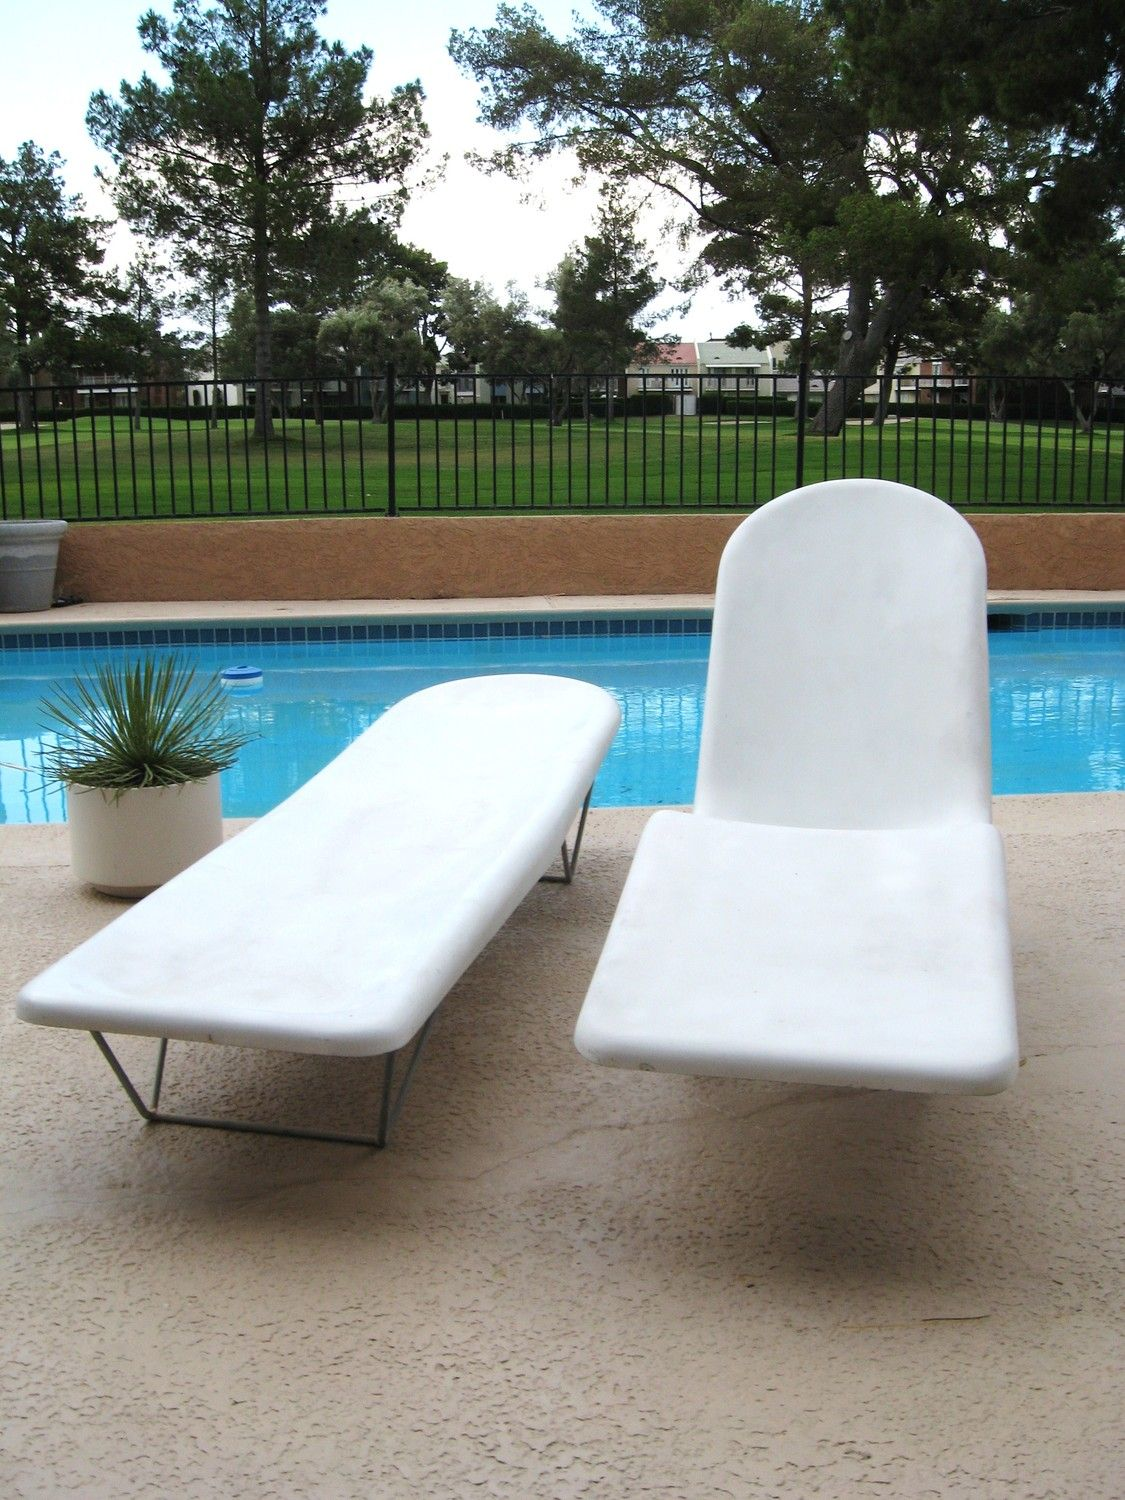 Pool Deck Chairs 60s Mid Century Modern Pair Molded Fiberglass Pool Lounge Chairs